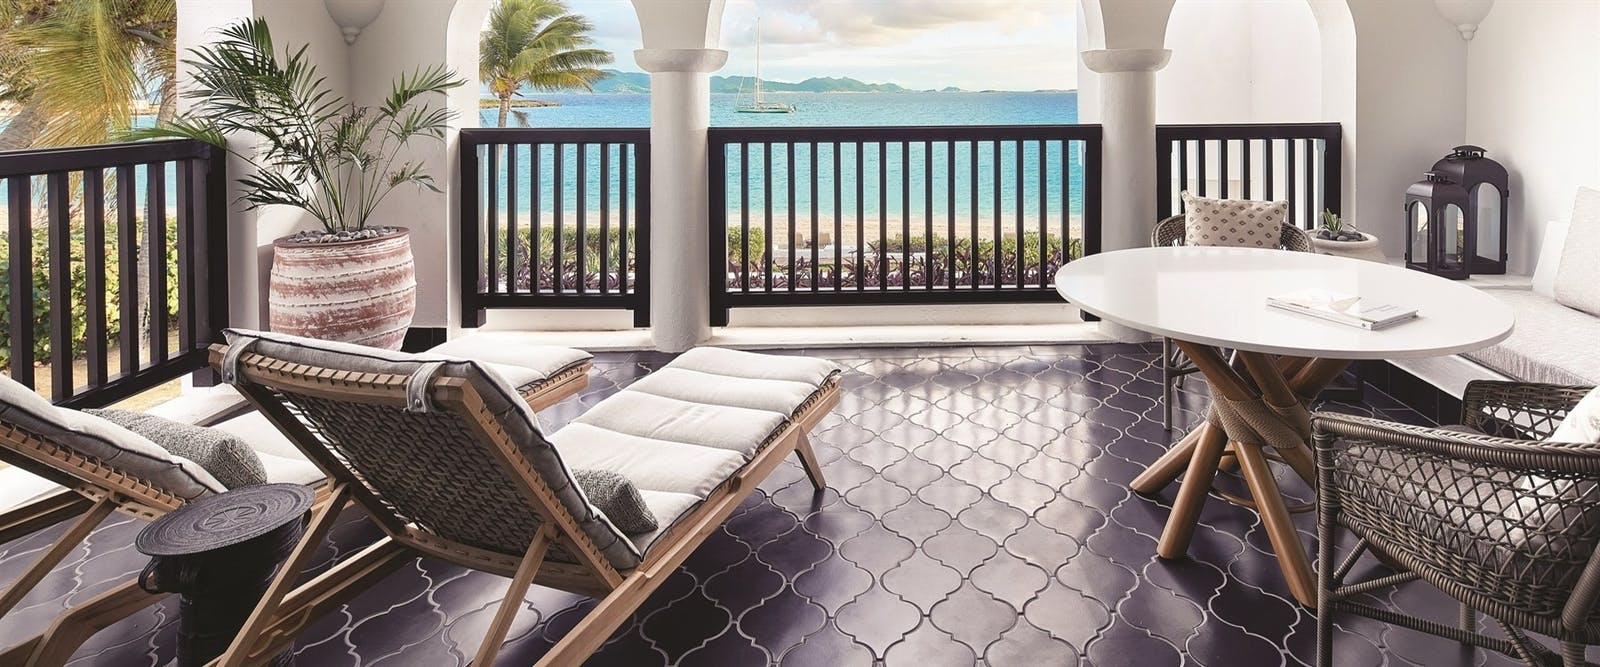 Terrace with Ocean View at Belmond Cap Juluca, Anguilla